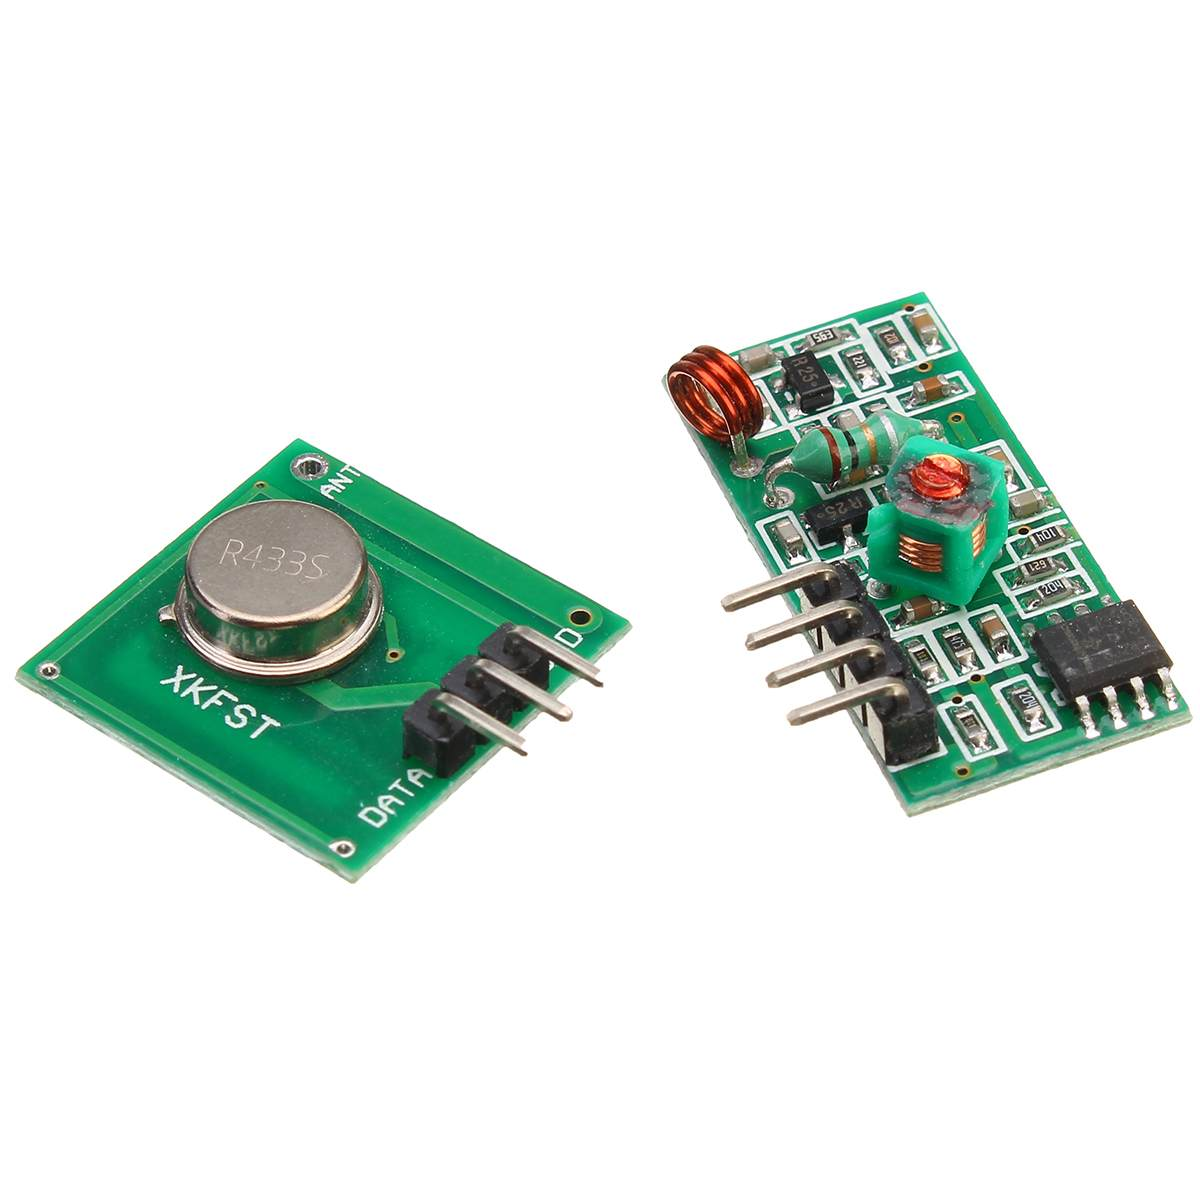 LEORY 433Mhz RF Decoder Transmitter With Receiver Module Kit For Arduino ARM MCU Wireless